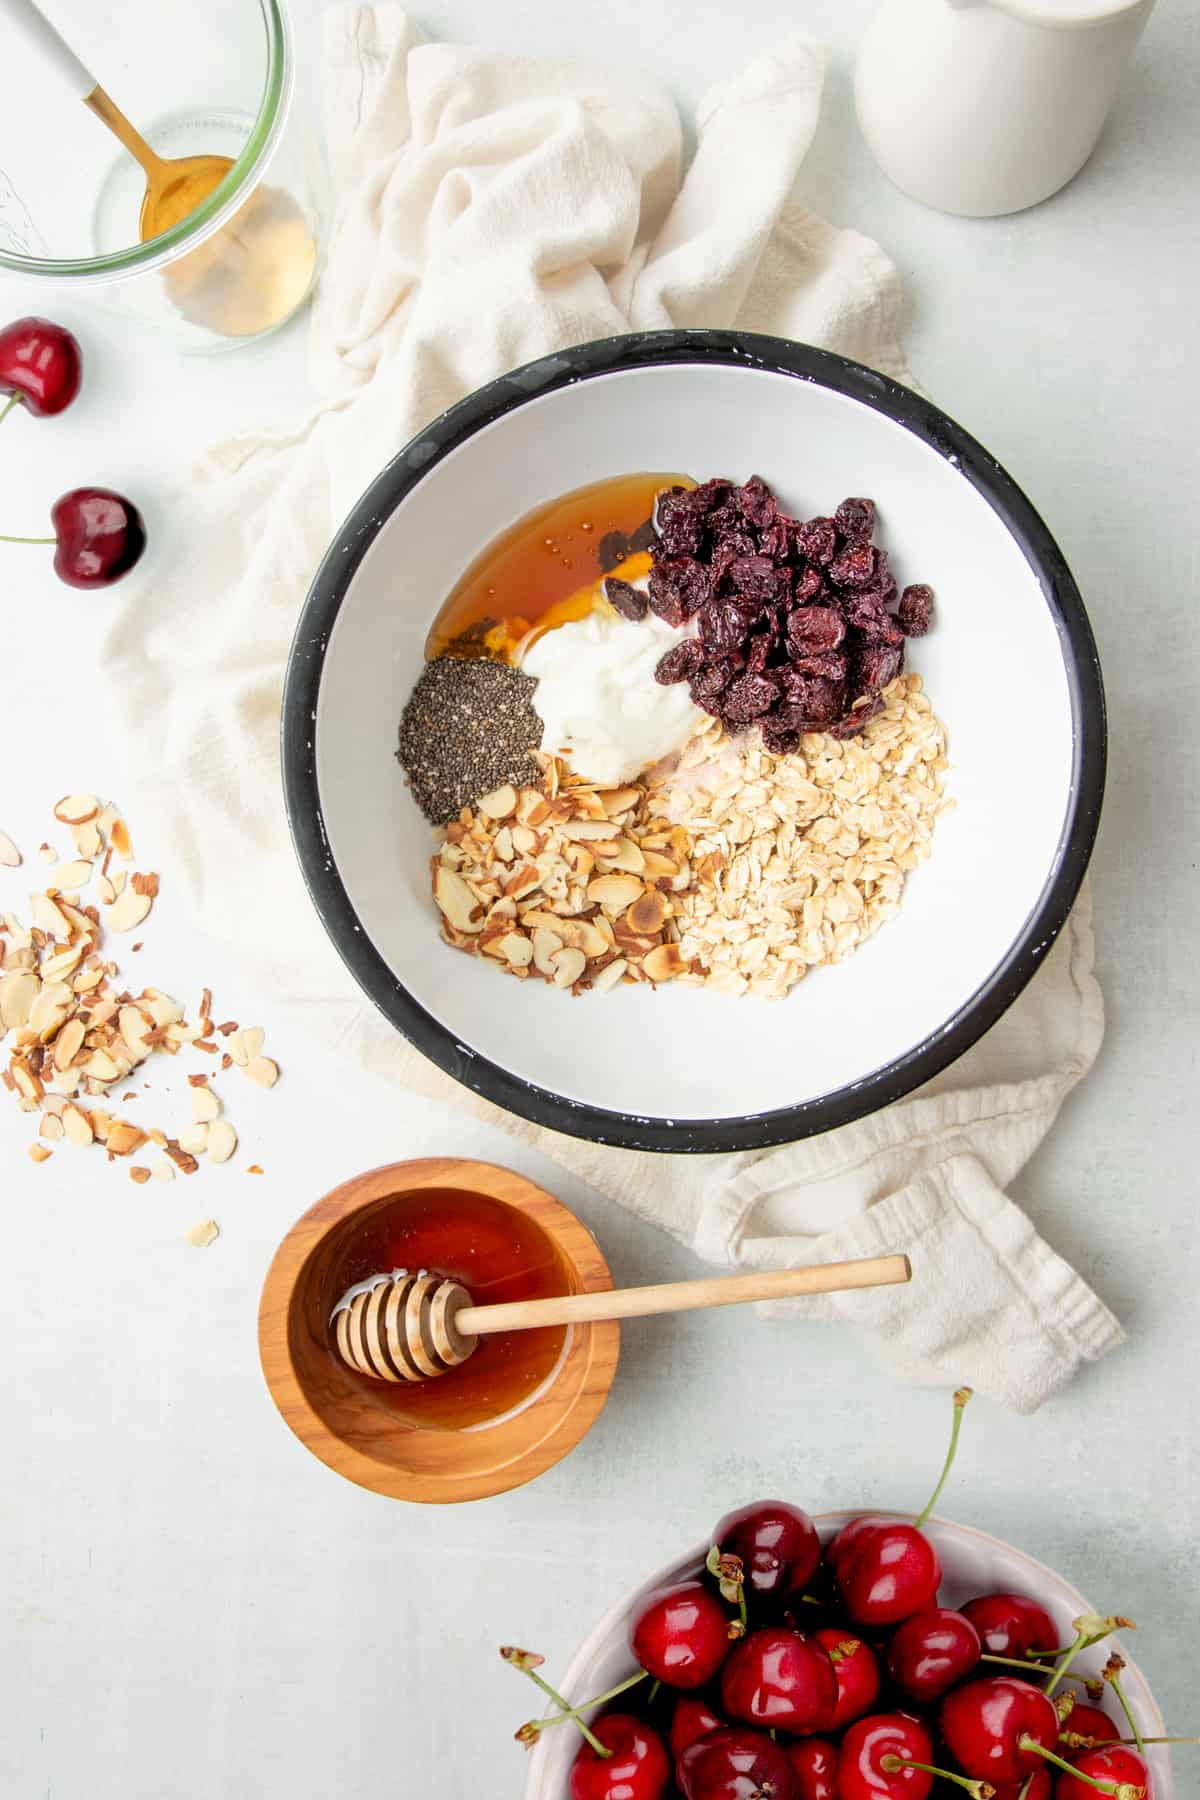 White mixing bowl full of ingredients such as oats, Greek yogurt, chia seeds, dried cherries, and more.